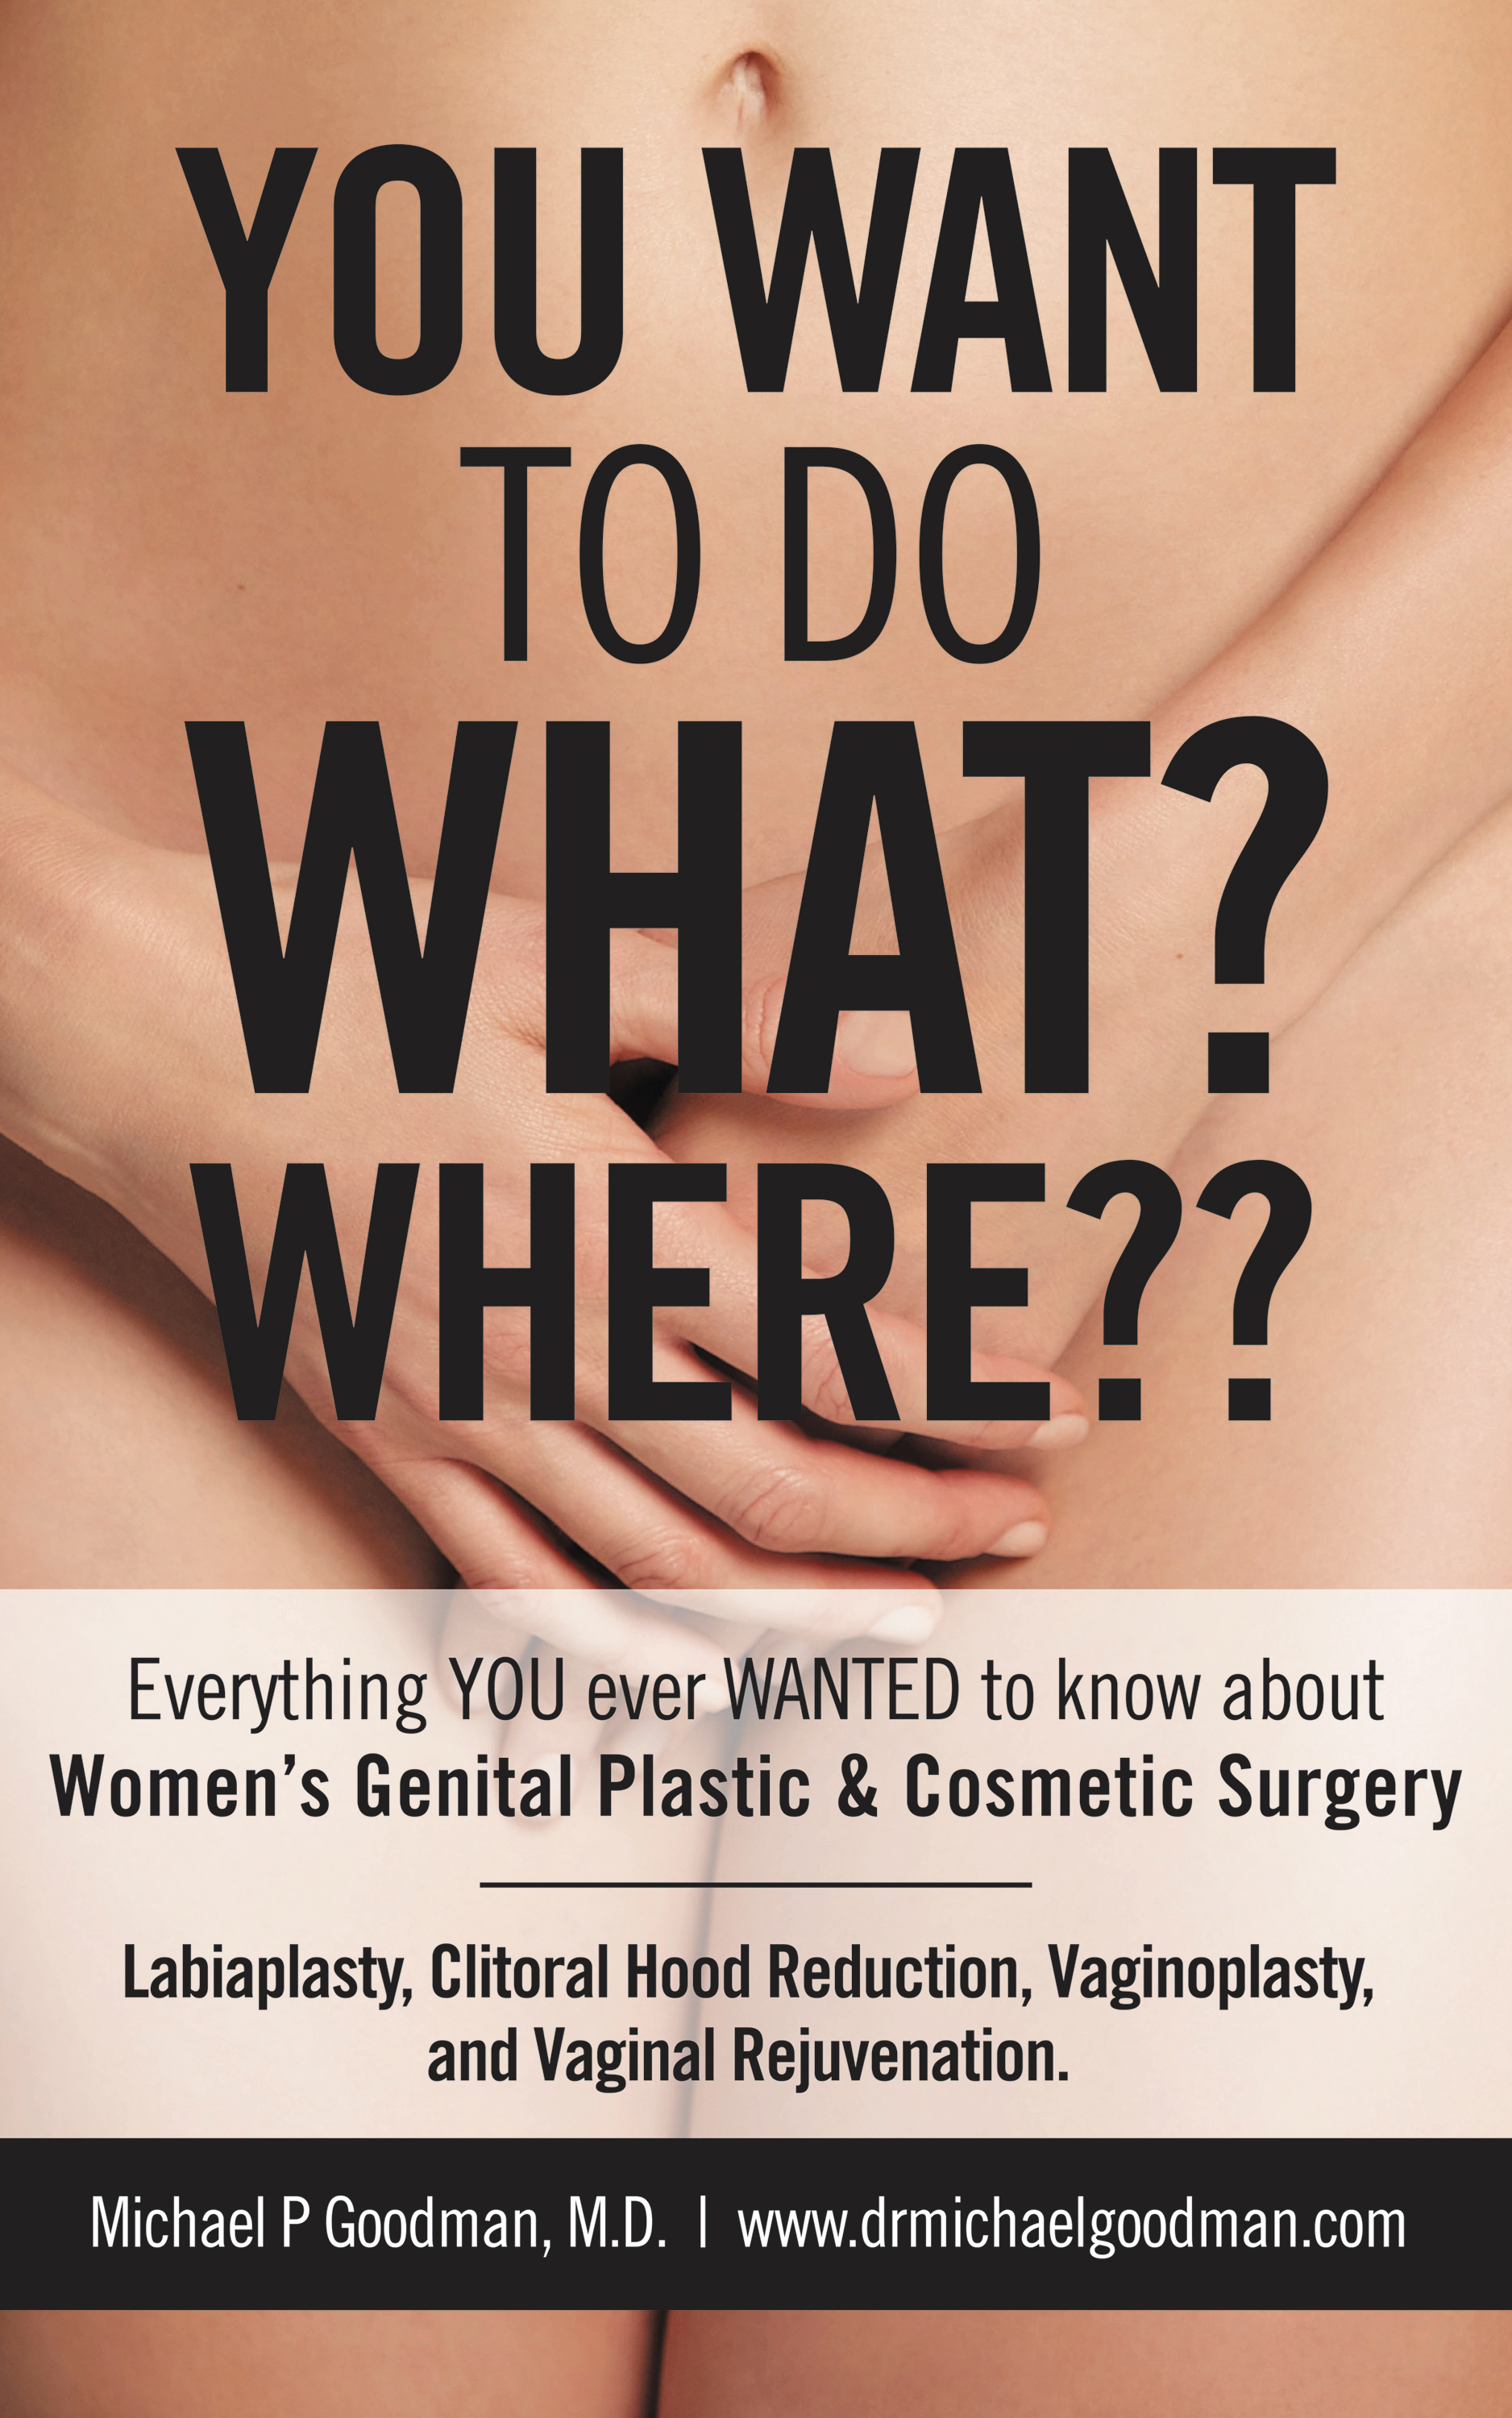 Globally Respected Feminine Cosmetic Genital Surgeon Joins Board Of Industry Leading Labiaplasty